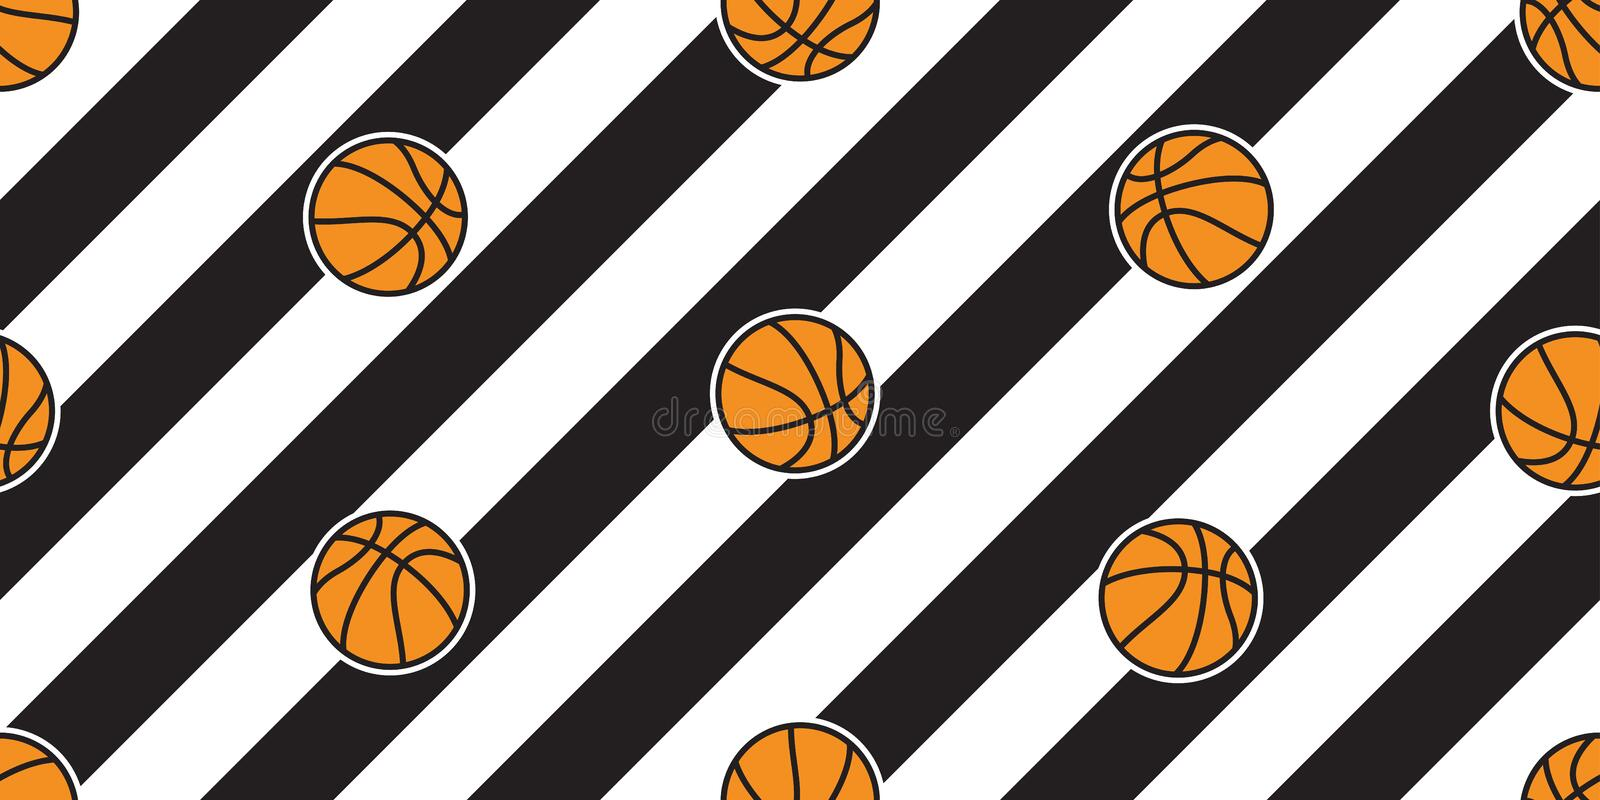 Basketball Wallpaper Stock Illustrations 9 636 Basketball